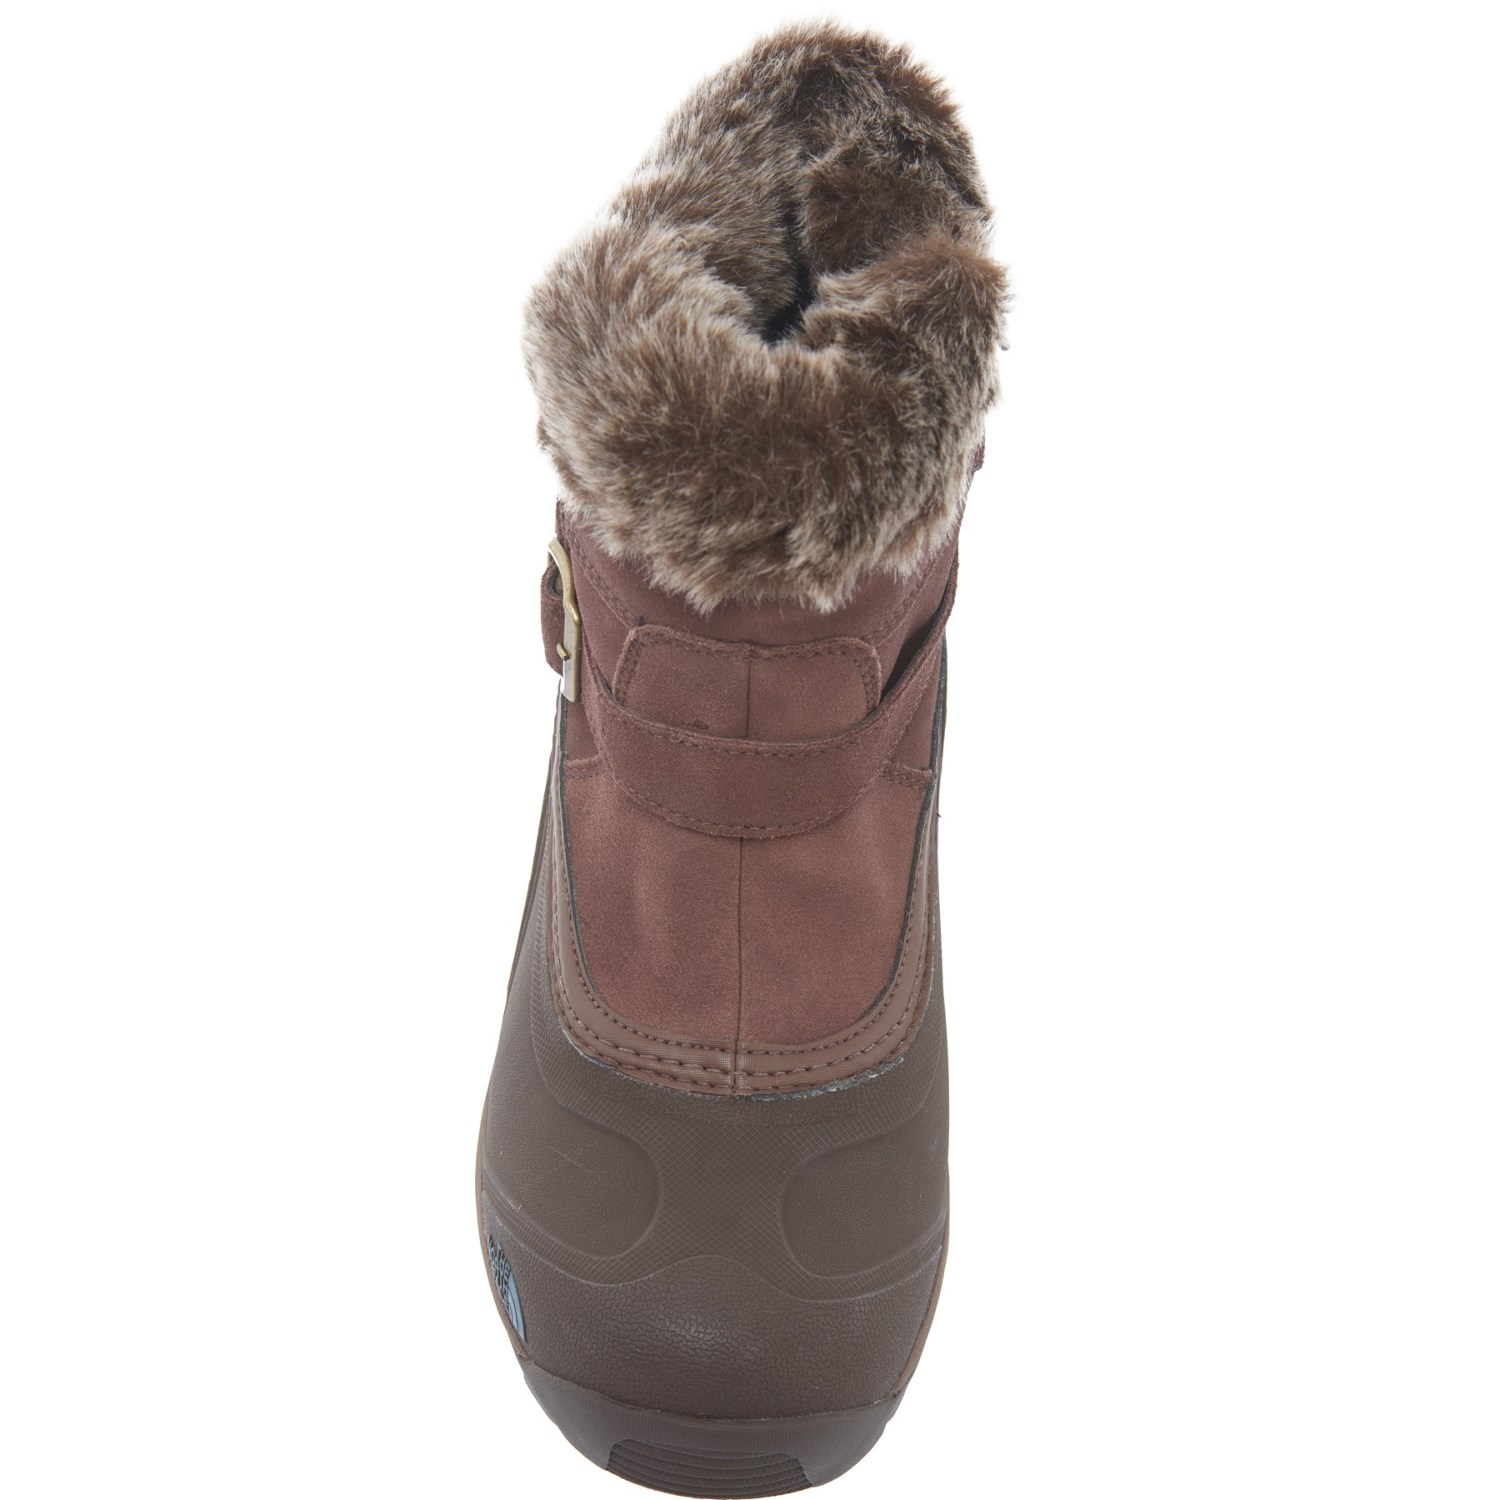 The North Face Chilkat Iii Pull On Boots For Women